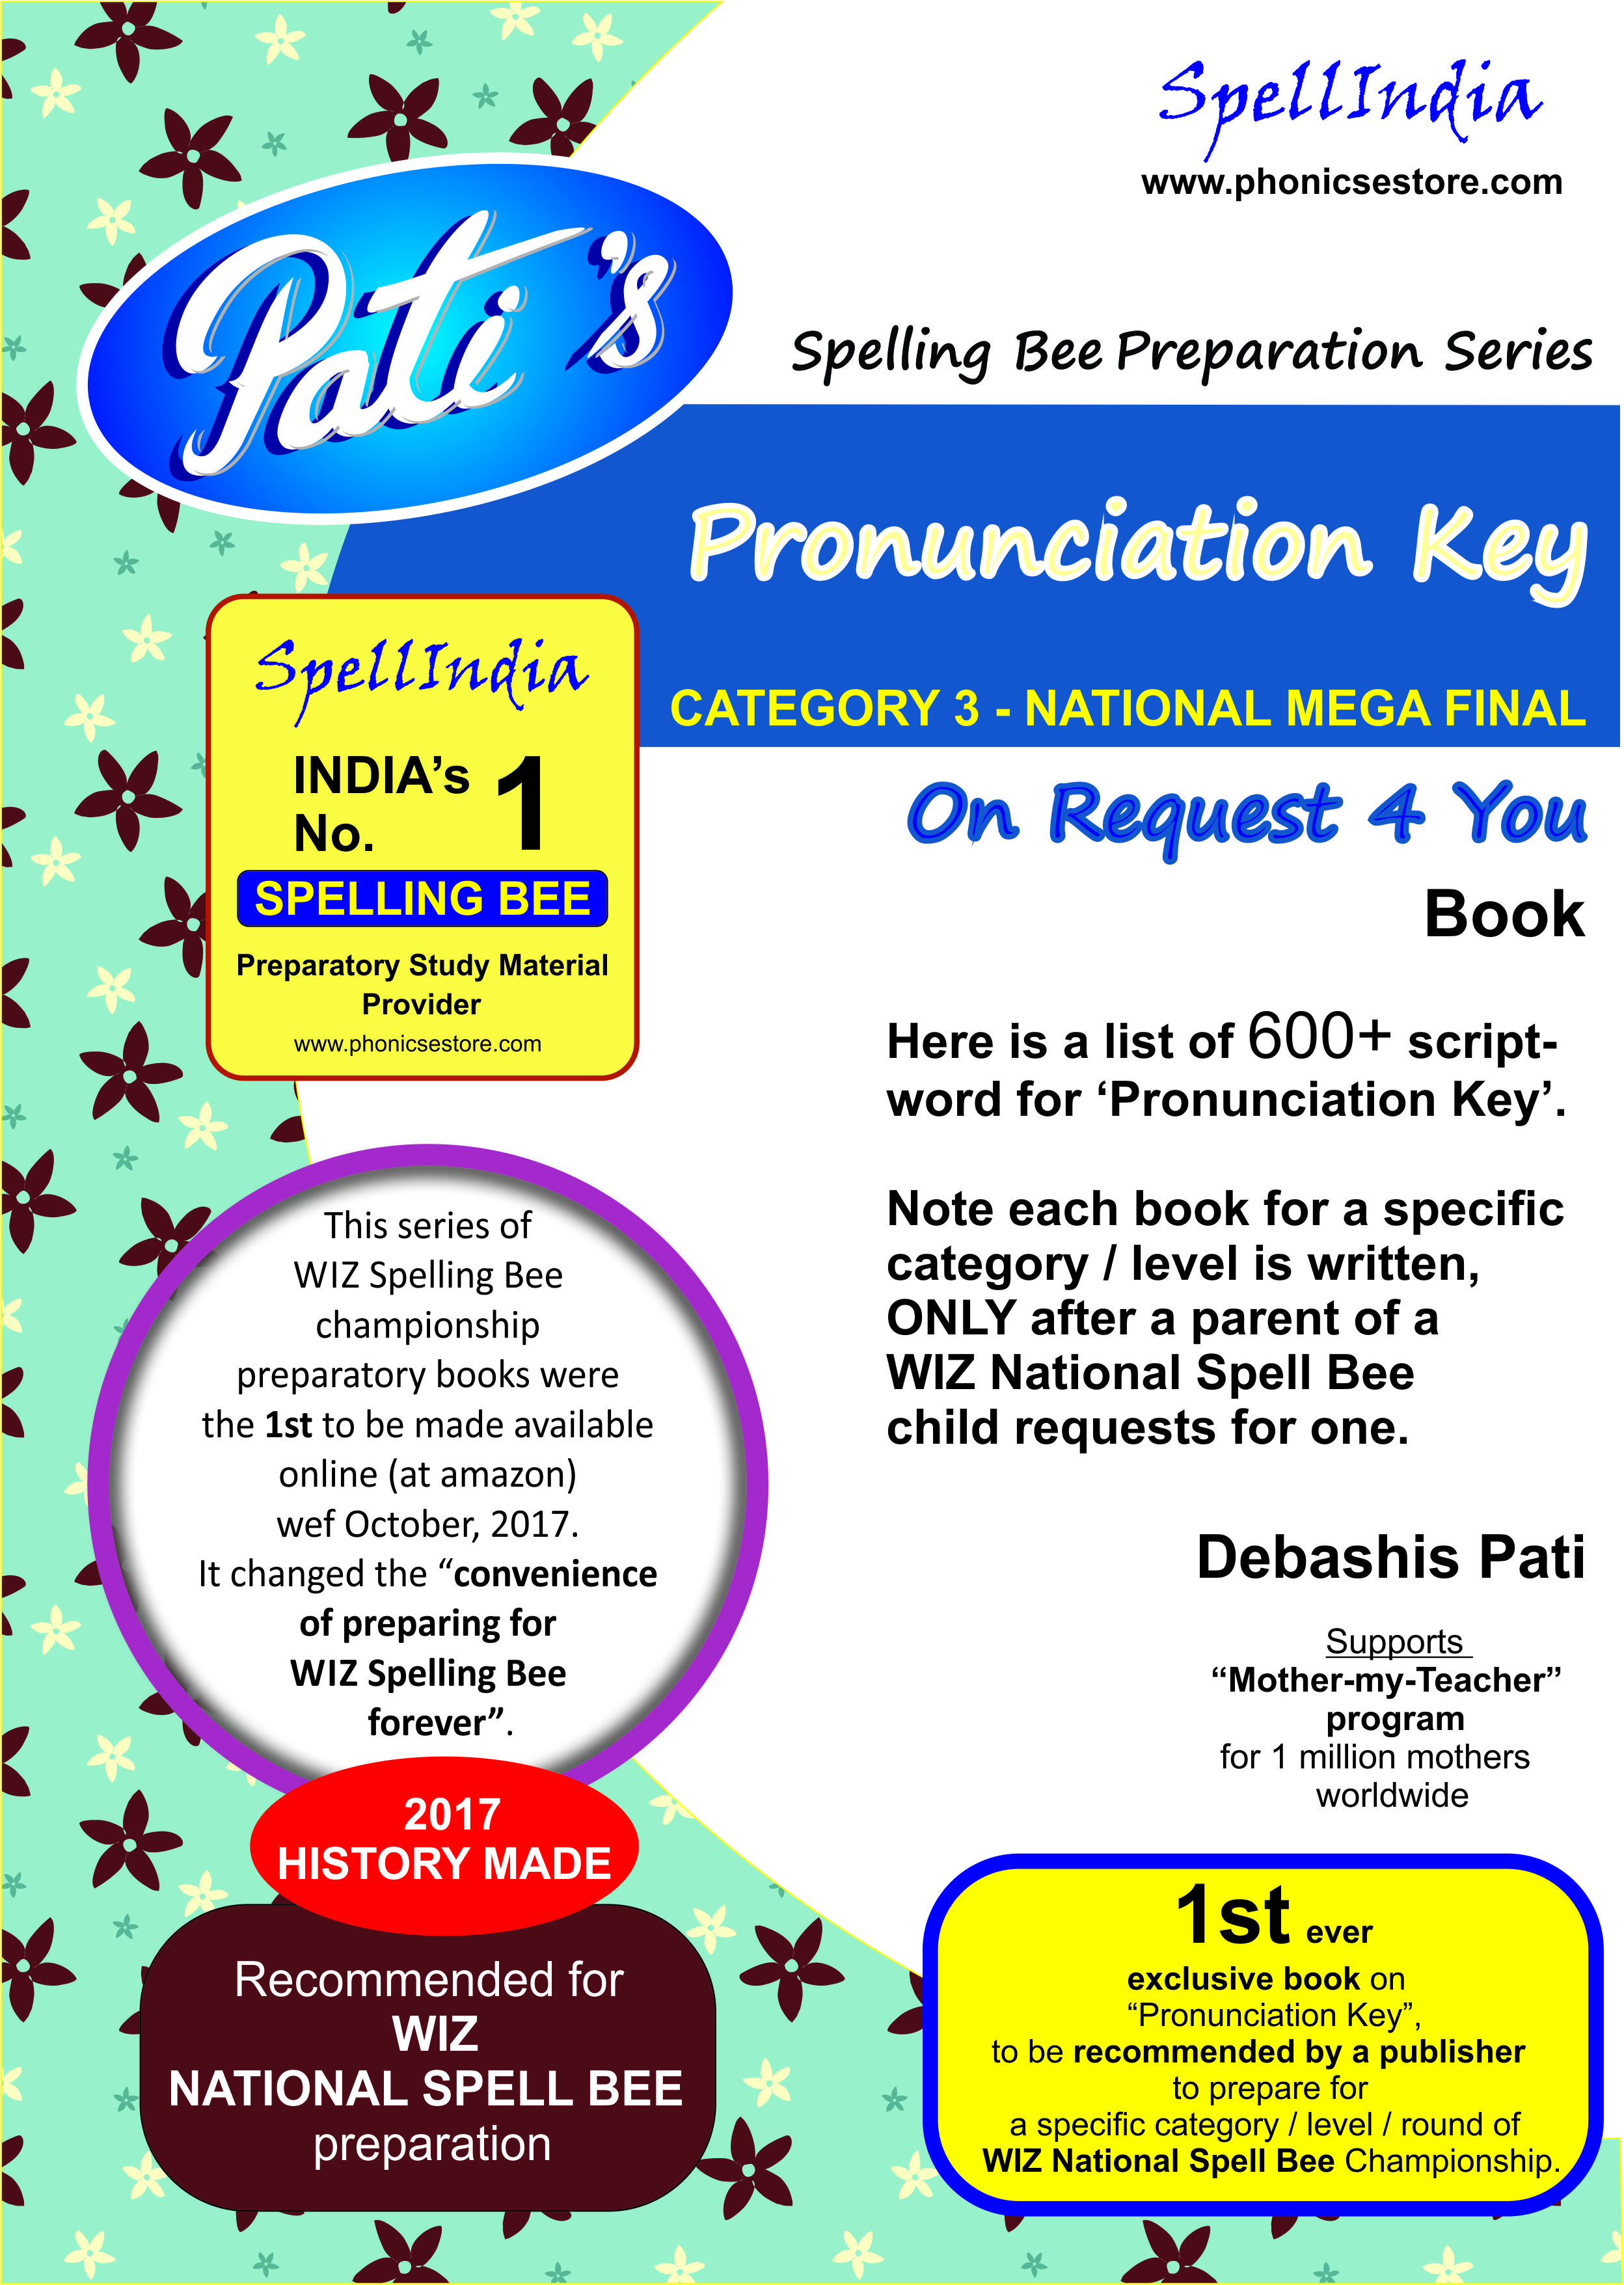 wiz pronunciation key state category 3 book